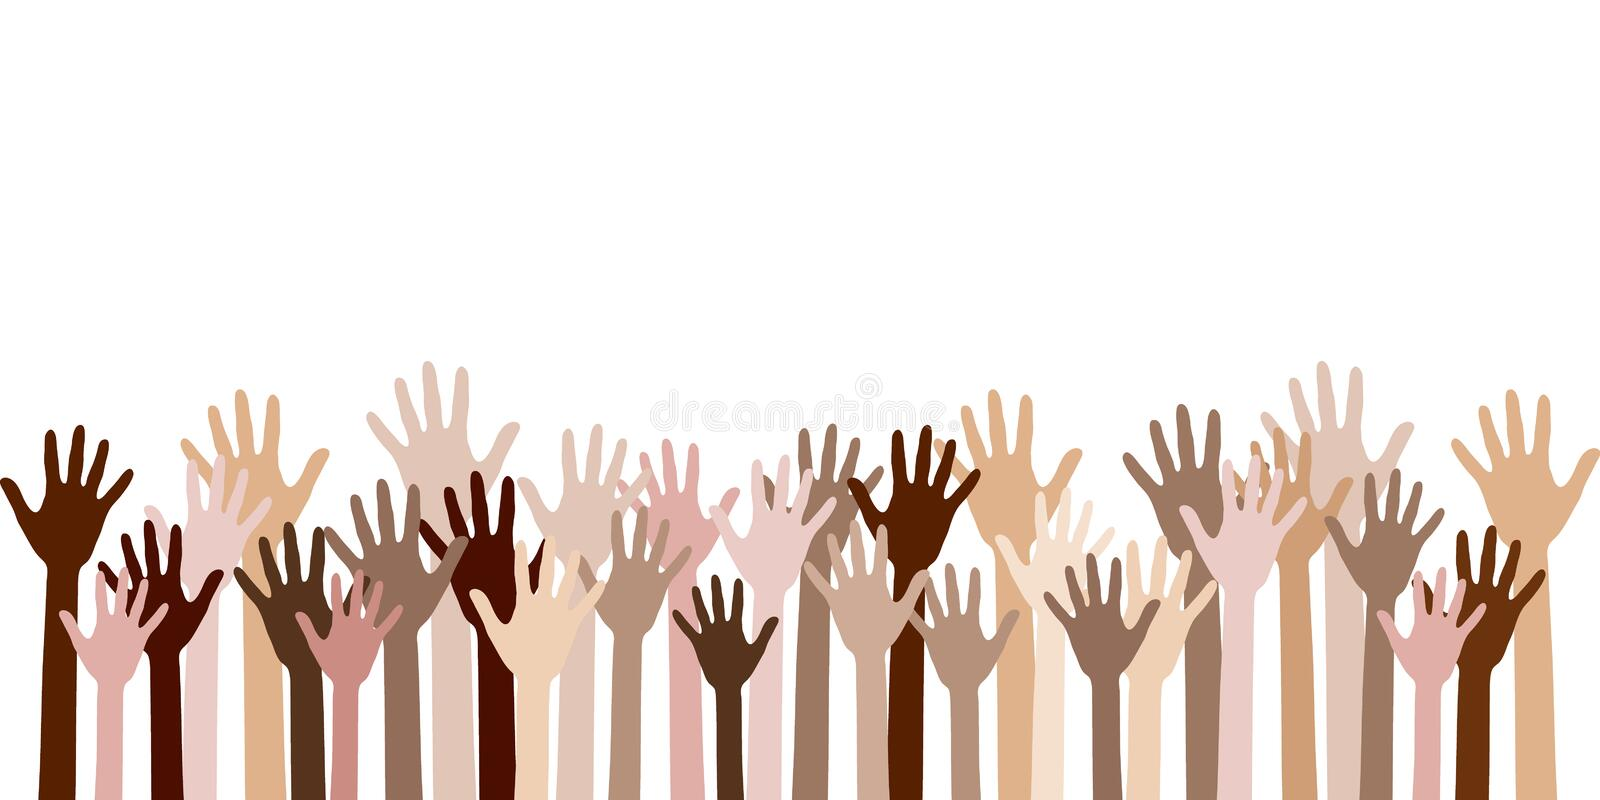 Diversity of human hands raised. vector illustration